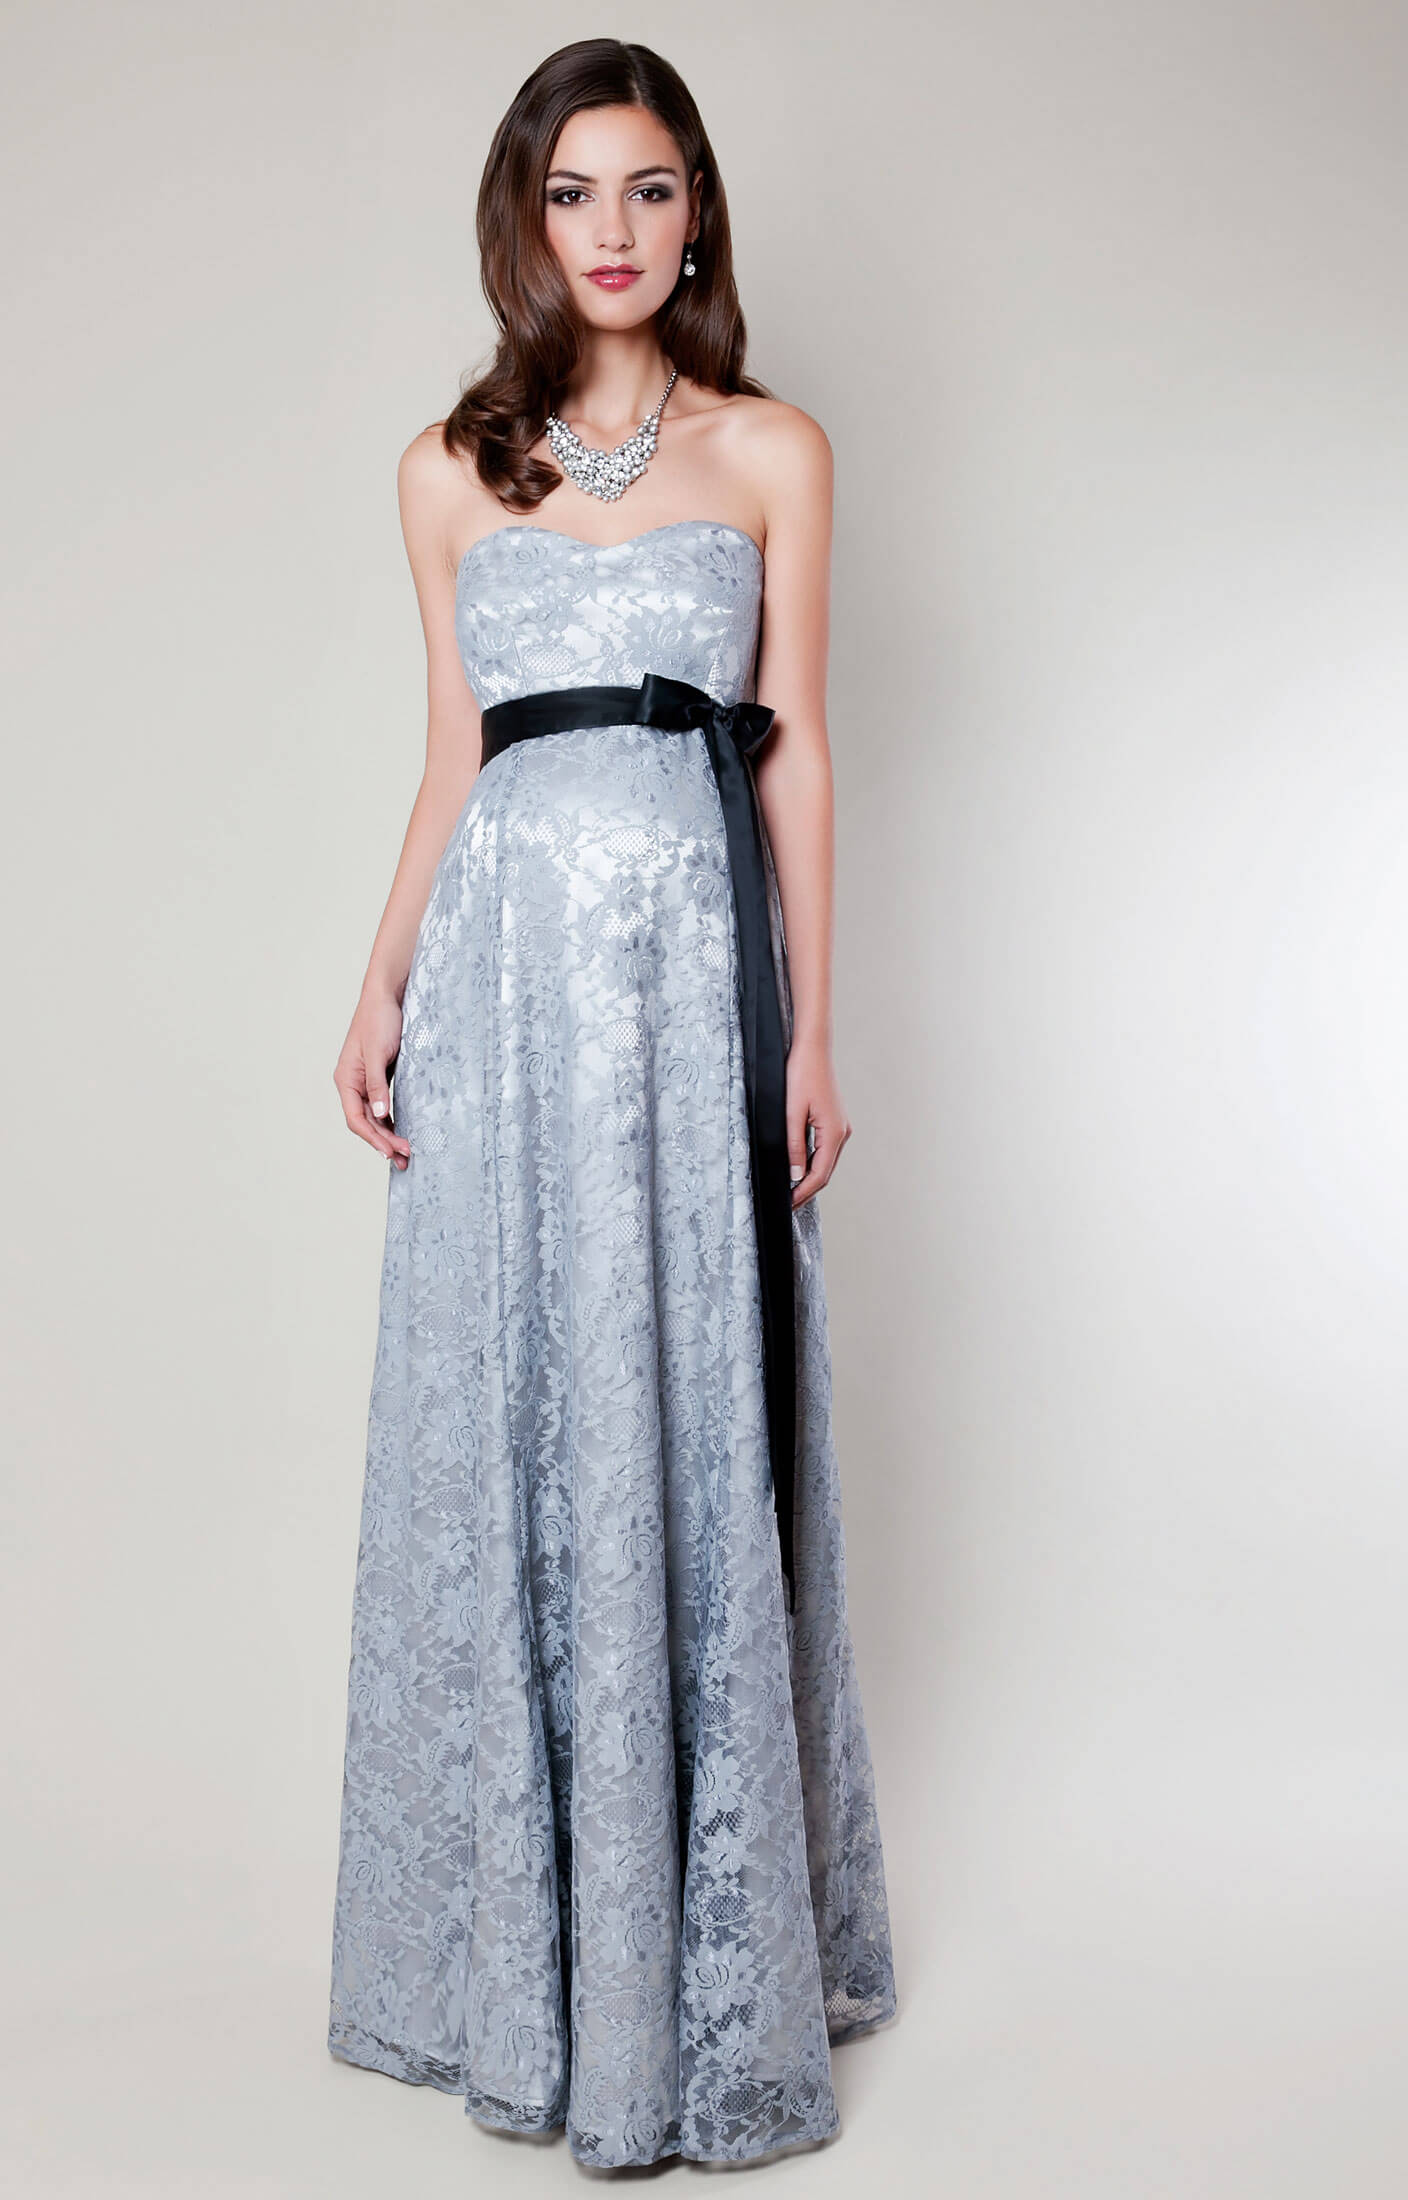 Olivia Maternity Gown (Silver Mist) silver wedding dresses Olivia Maternity Gown Silver Mist by Tiffany Rose